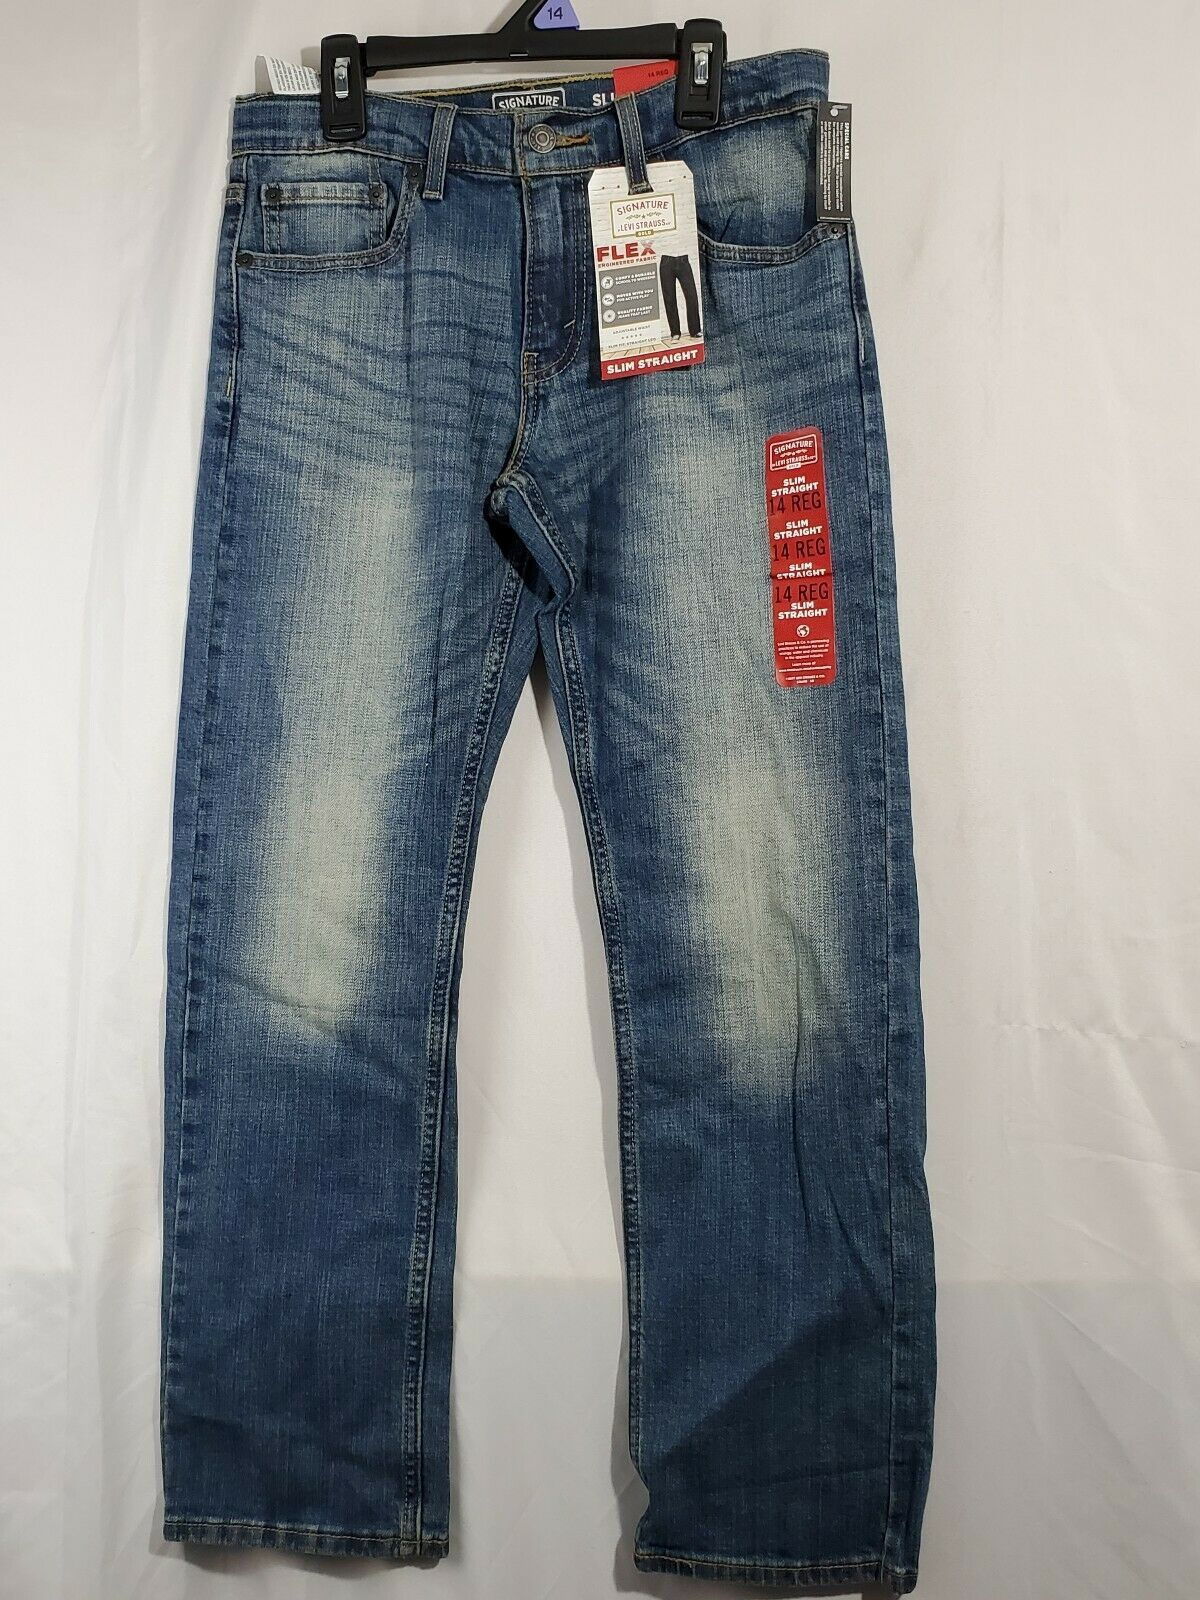 Primary image for Signature by Levi Strauss Gold Label Boys Athletic slim Straight Jeans 14 (8b)